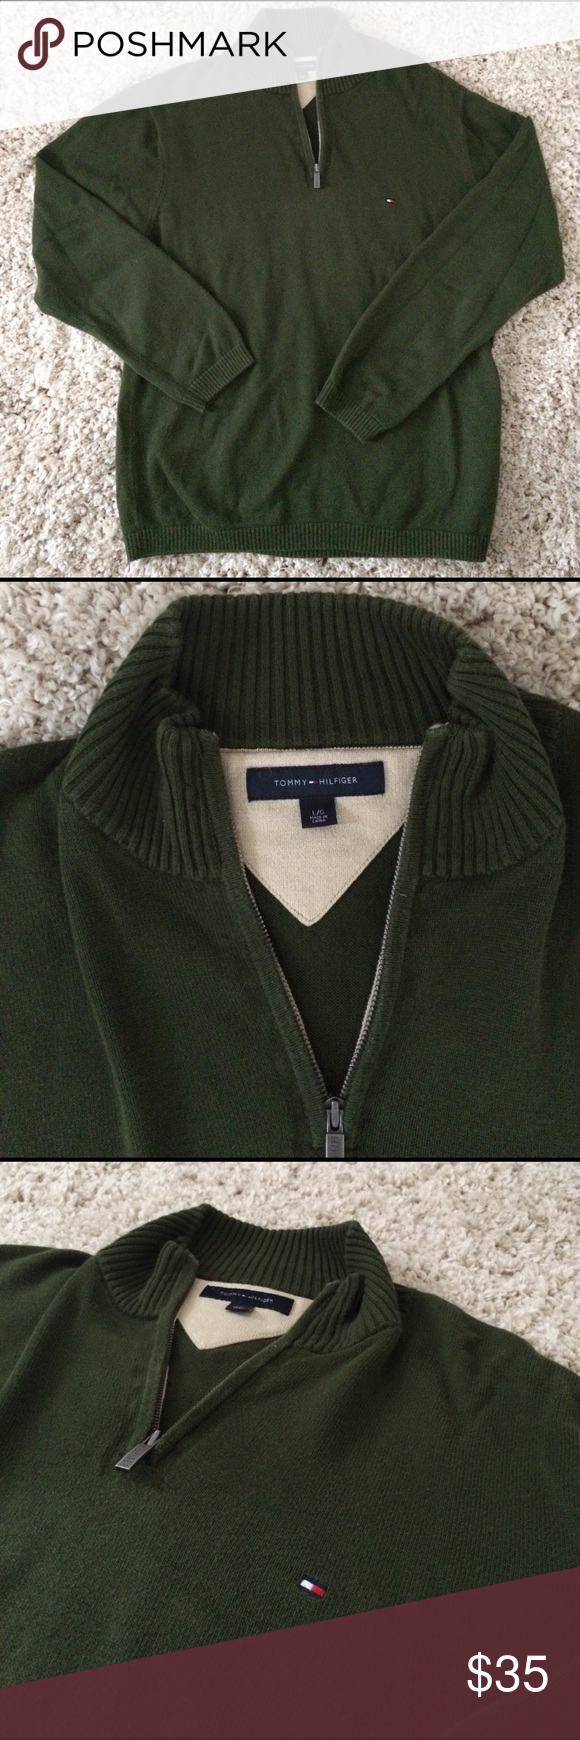 Tommy Hilfiger BNWOT 1/4 zip sweater Brand new men's 1/4 zip sweater. Great condition! Tommy Hilfiger Sweaters Zip Up